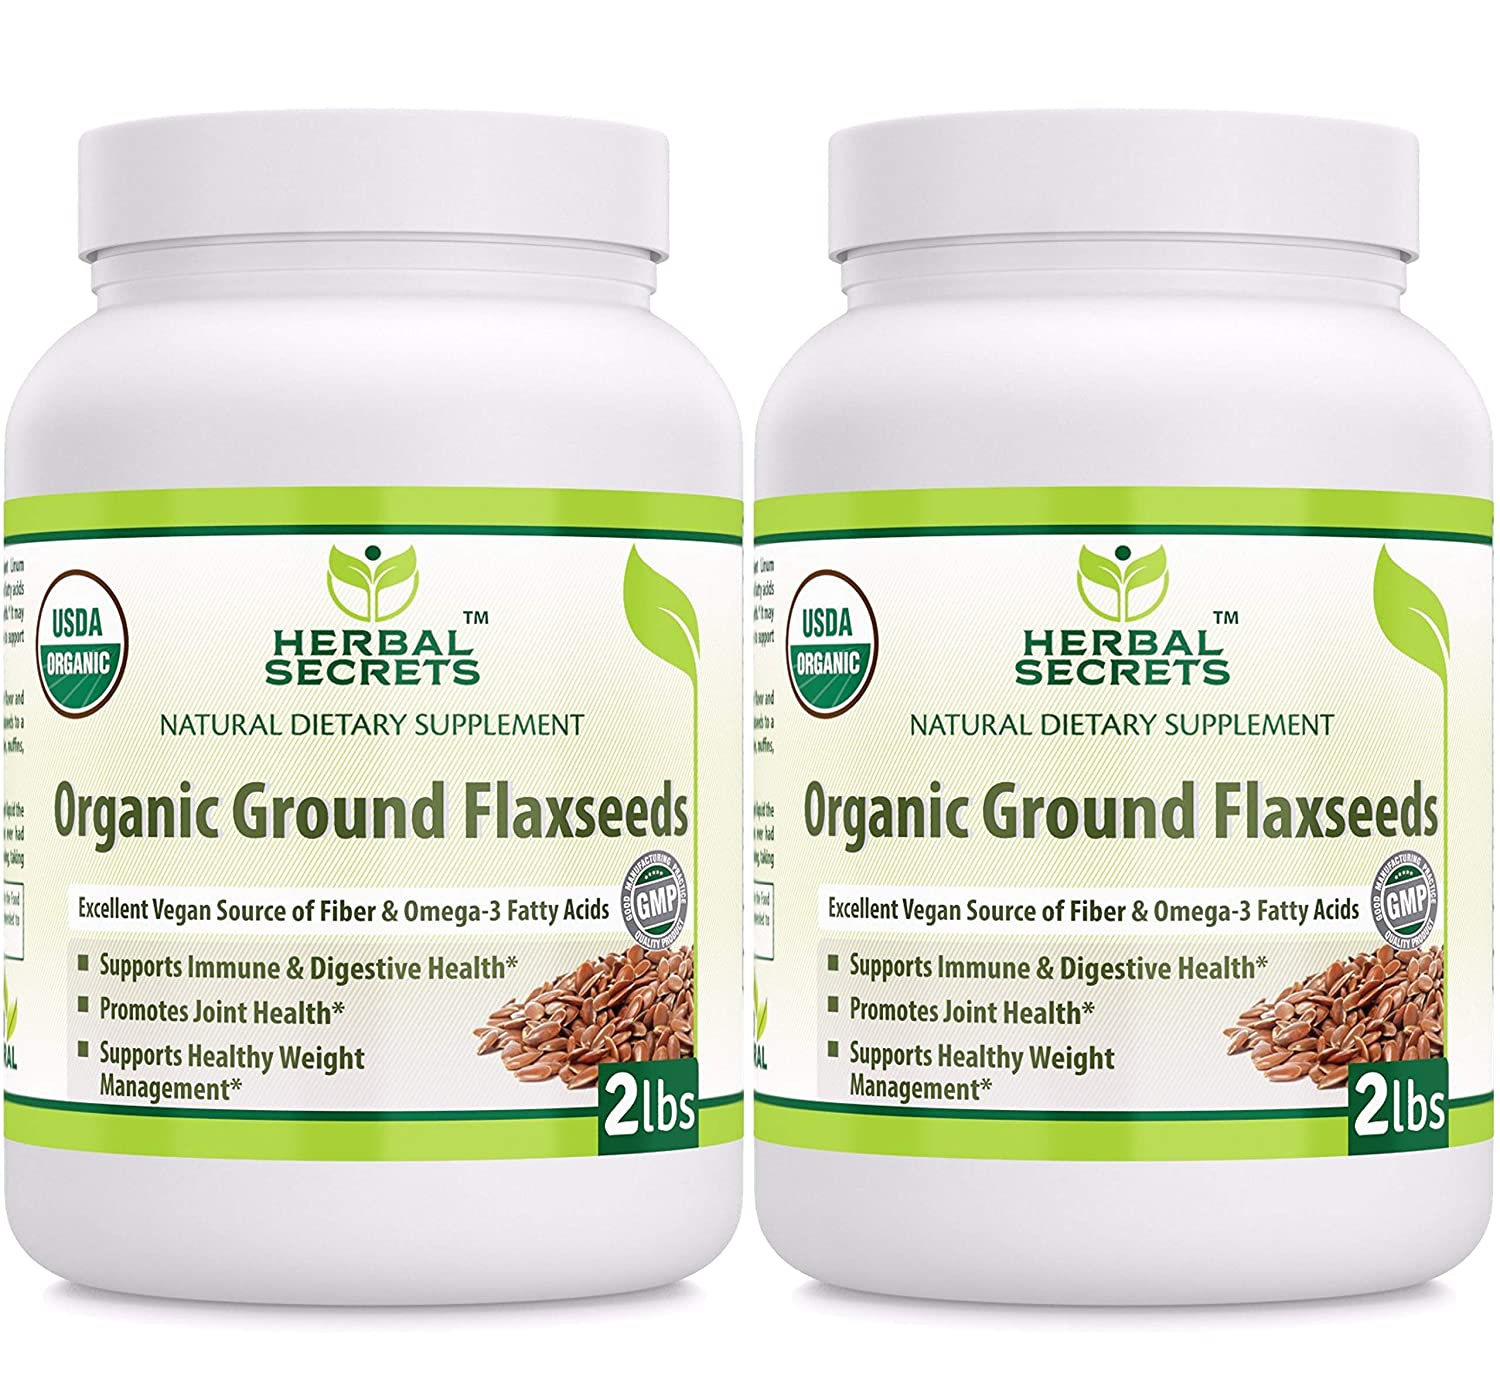 Herbal Secrets Organic Ground Flaxseed 4 Lbs Excellent Vegan Source of Fiber Omega – Fatty Acids USDA Certified Organic- Promotes Joint Health Supports Healthy Weight Management